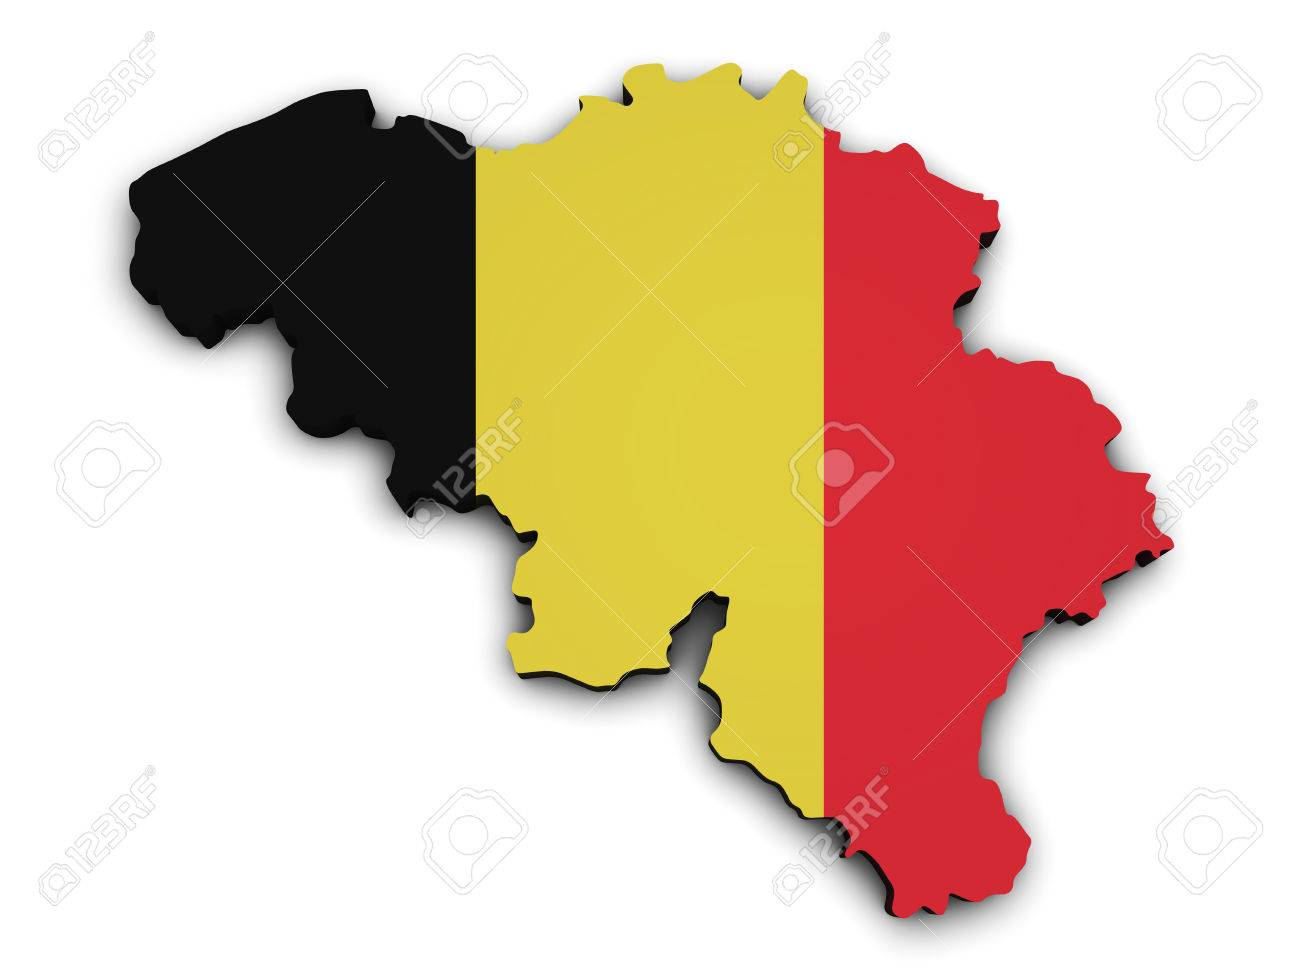 Shape 3d Of Belgium Map With Belgian Flag Illustration Isolated